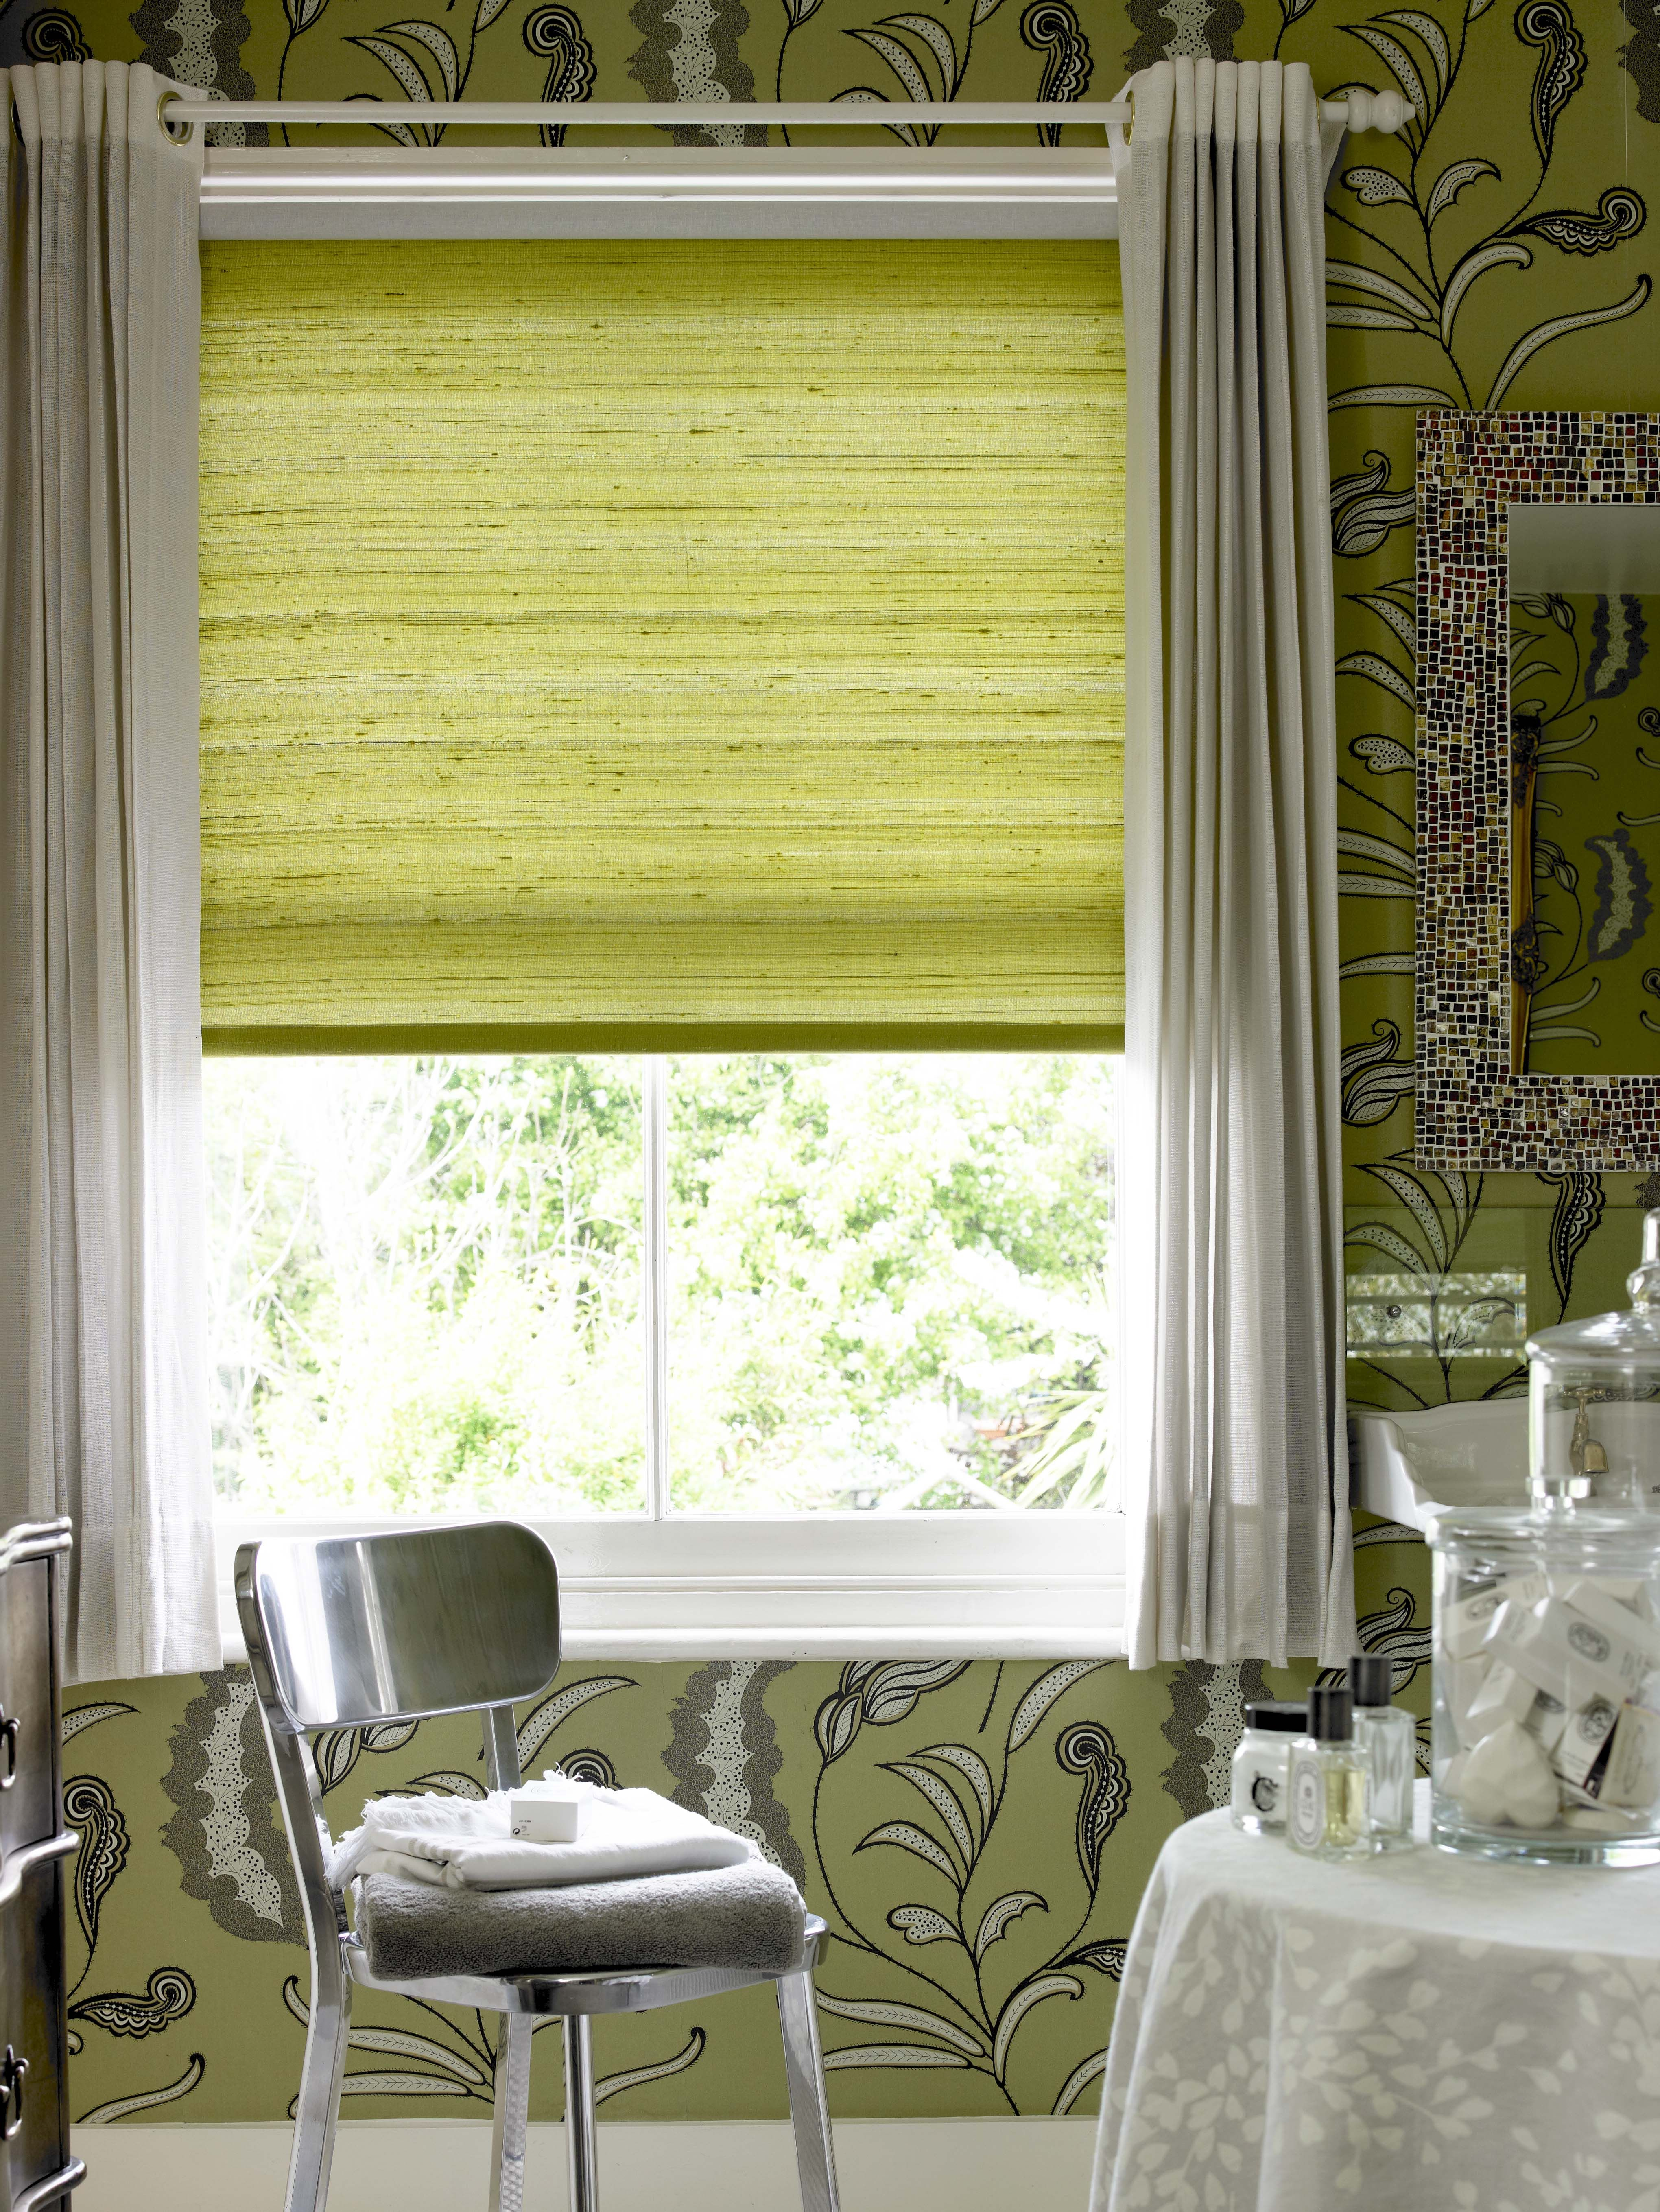 Beautiful roller blinds curtains...minus the wall! | Home decs ...